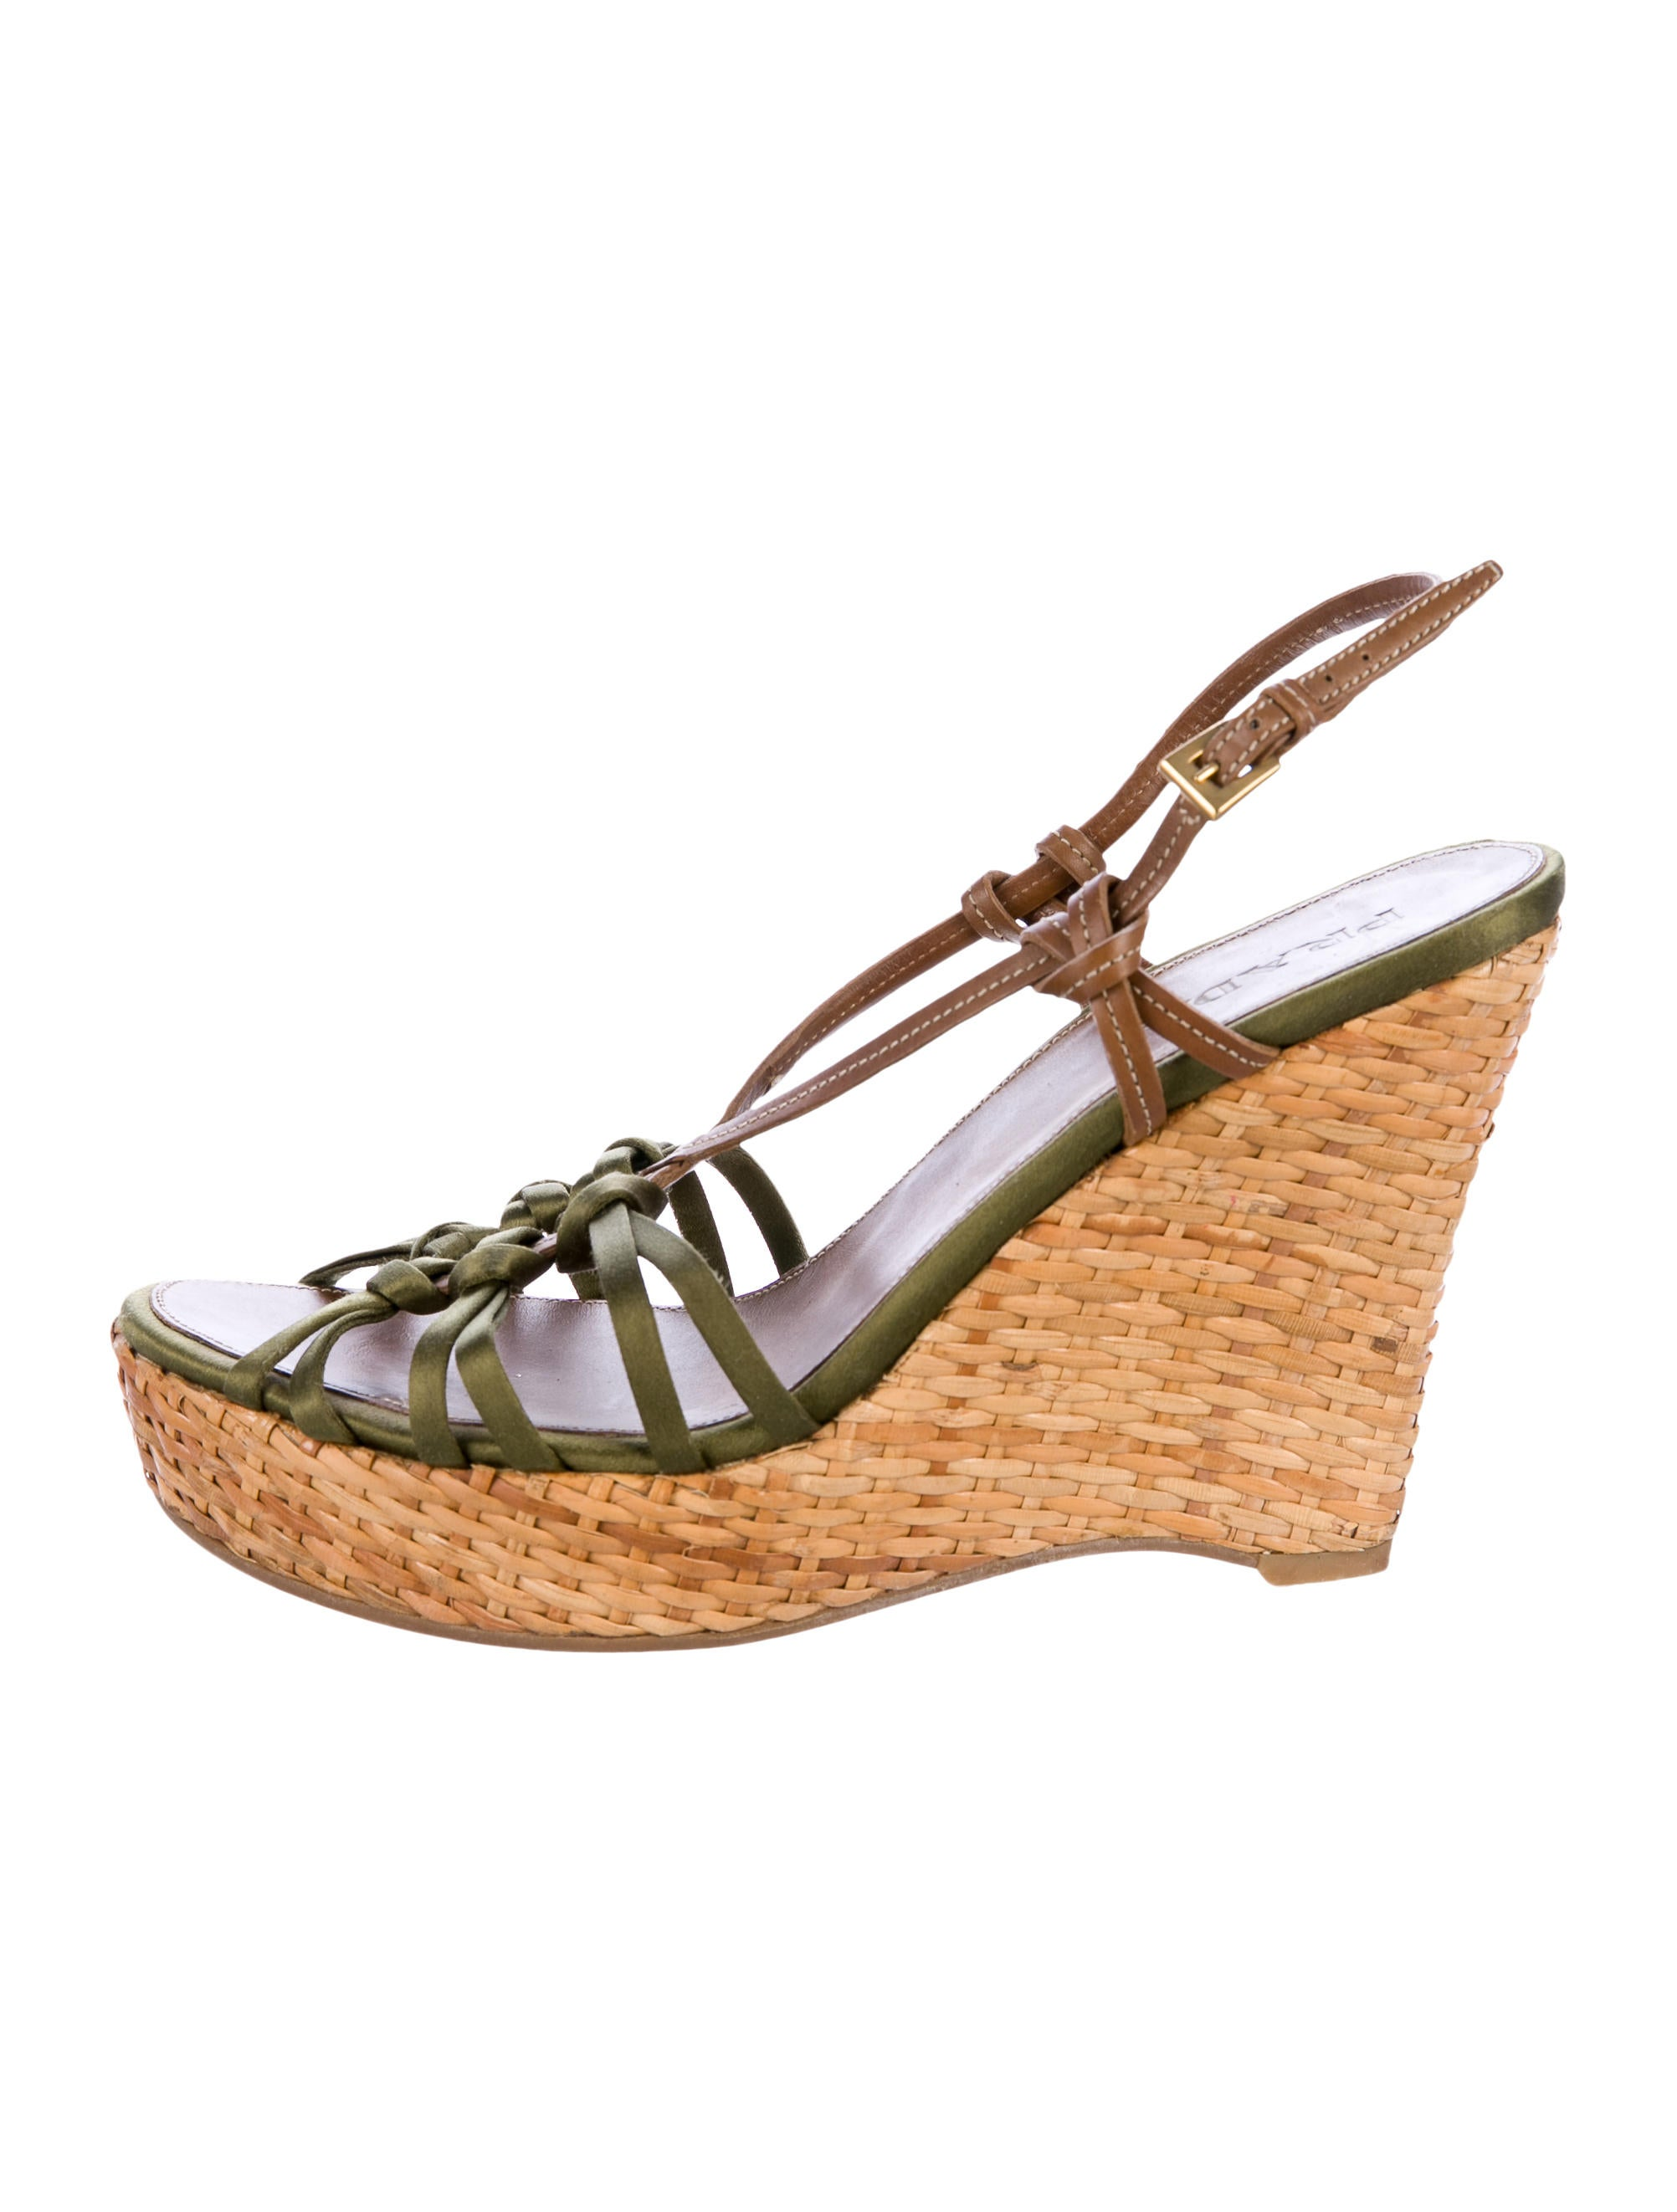 Prada Satin Crossover Wedges outlet locations online best wholesale for sale clearance discounts outlet professional latest collections online CVerGOJ